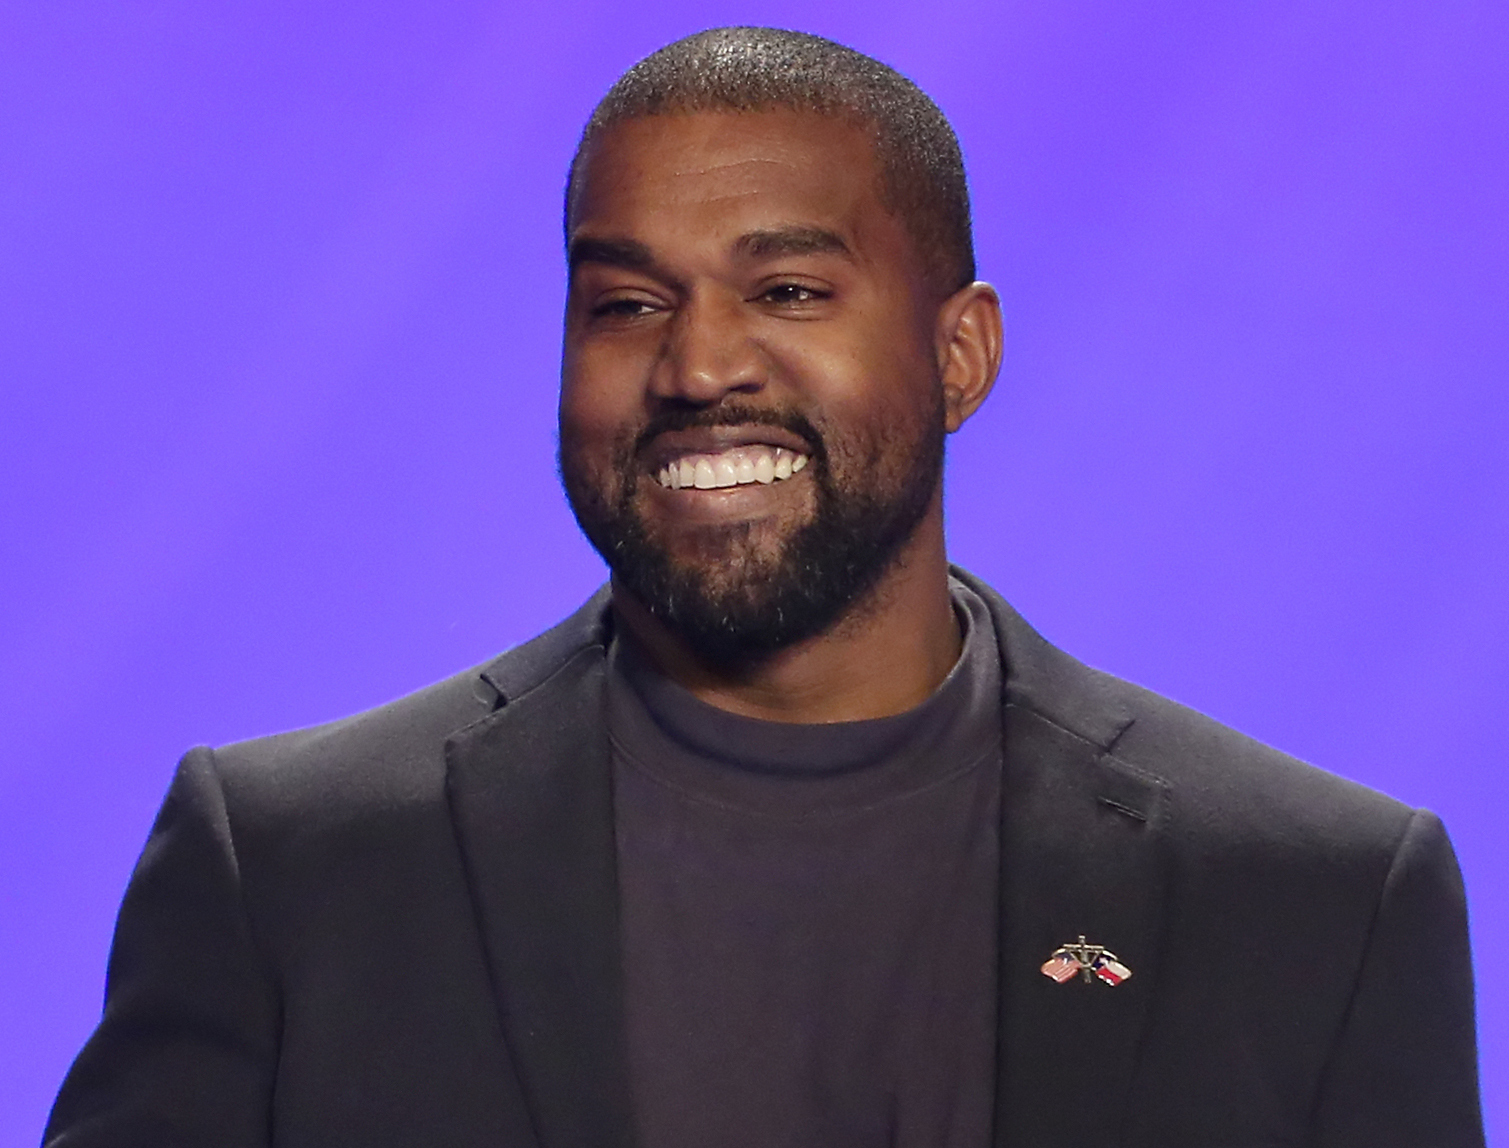 Kanye West An Official Vice Presidential Candidate